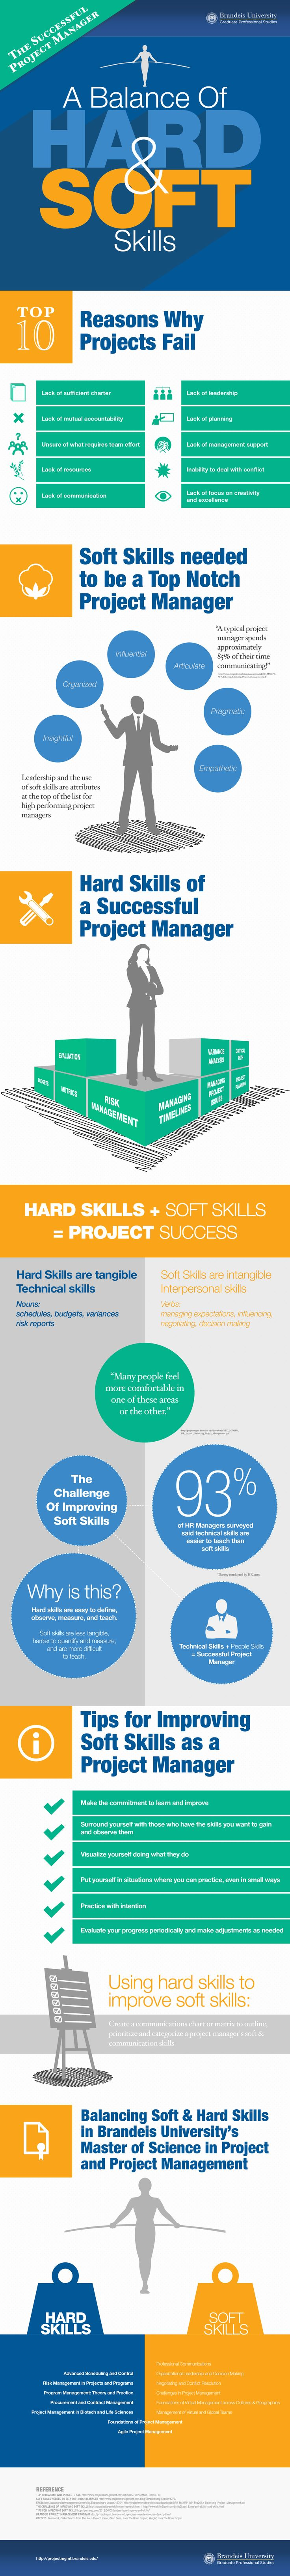 Infographic: The Successful Project Manager: A Balance Of Hard And Soft Skills http://480degrees.com/